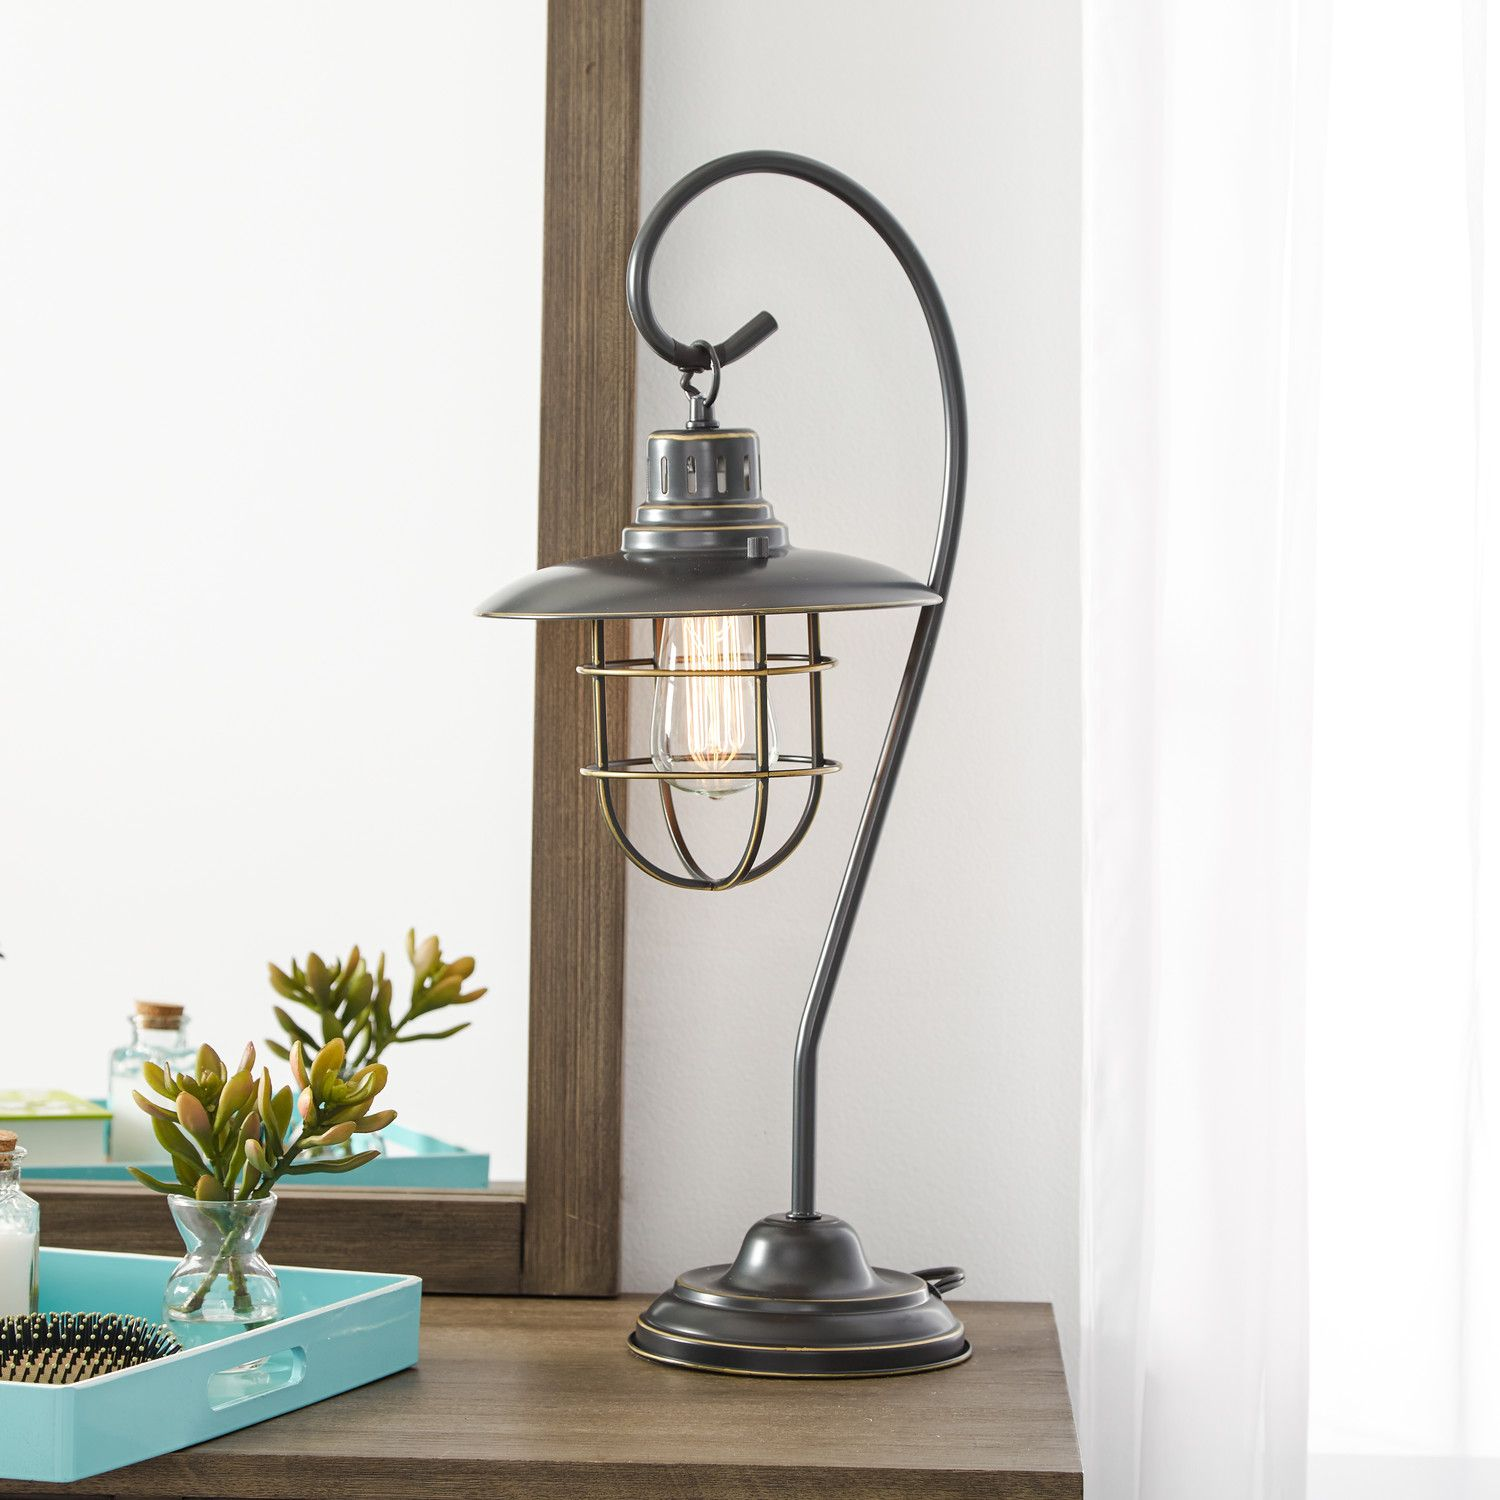 Stylish And Practical Night Stand Lamps In 2020 Pendant Lamp